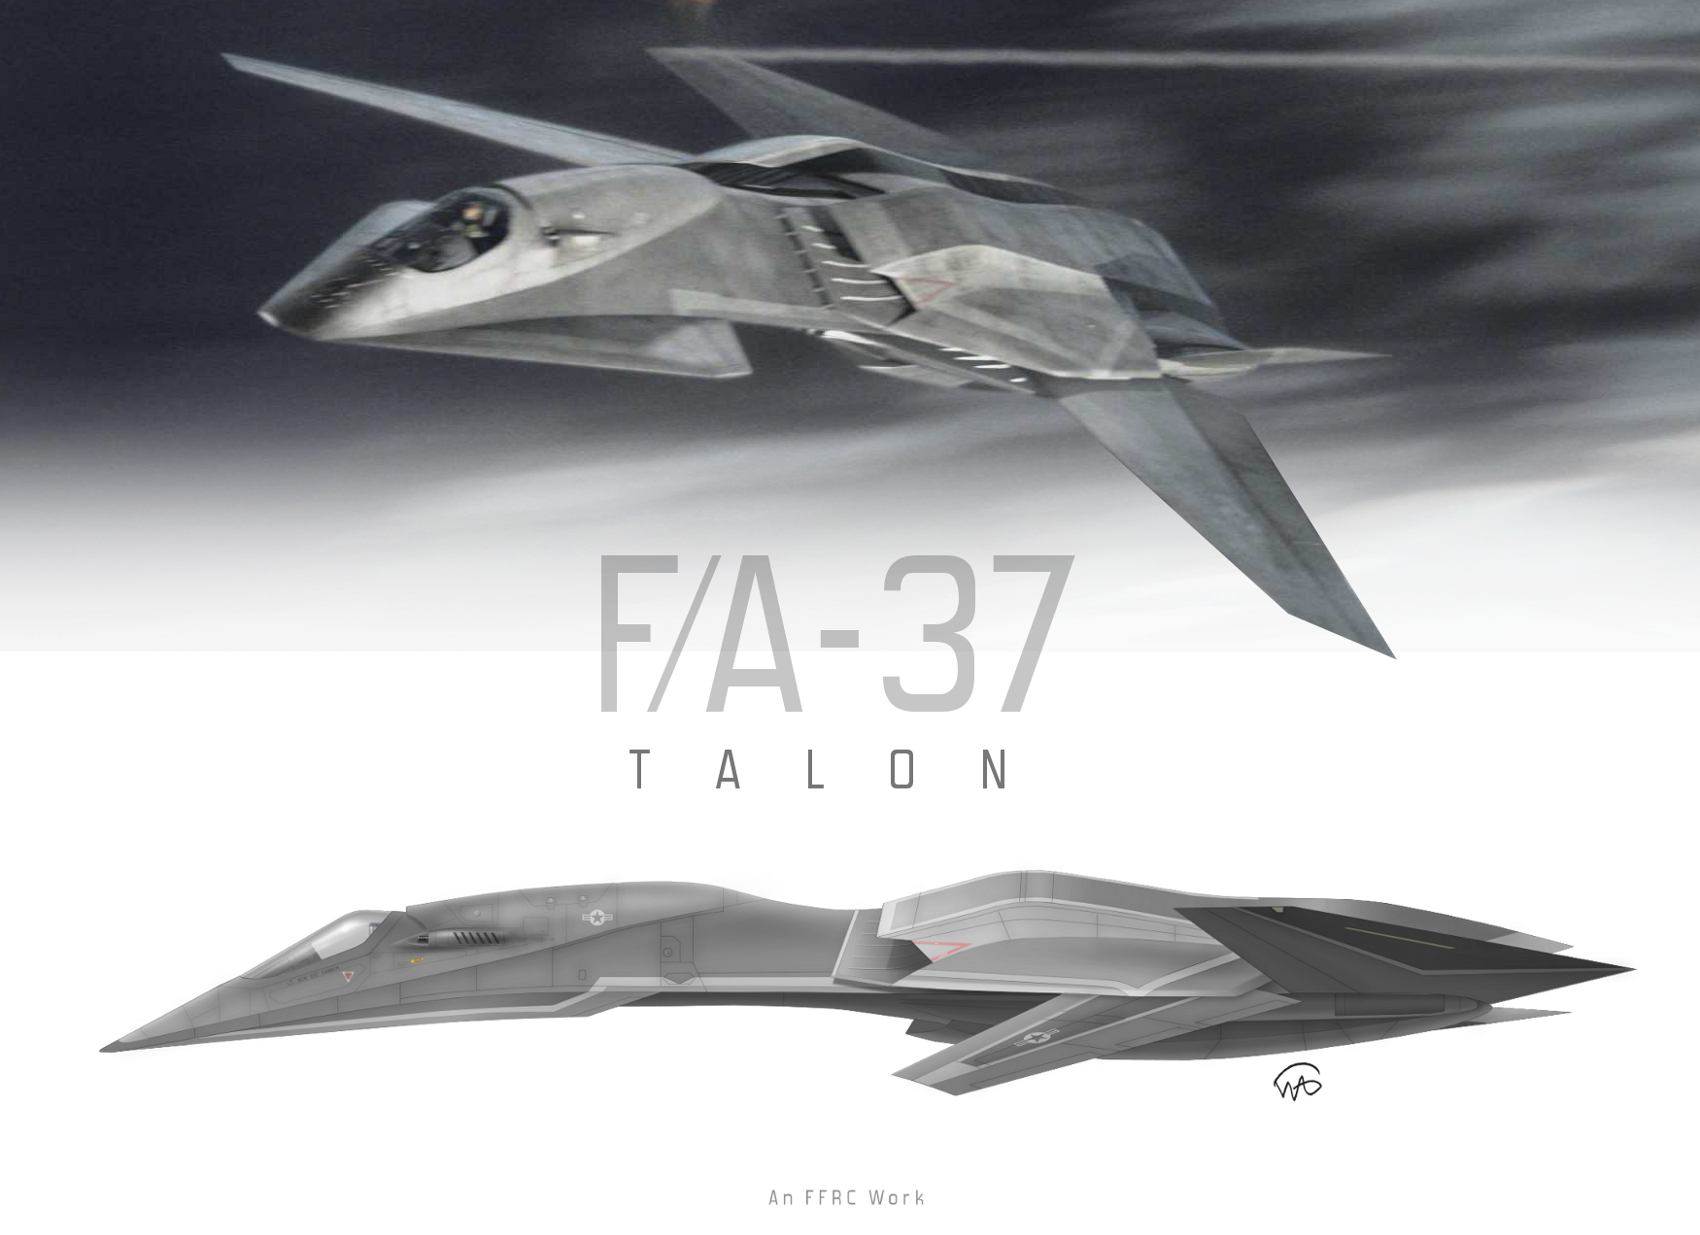 the future of drones with F A 37 Talon 345855342 on Us Dod Developing Cognitive Adaptive Electronic Warfare Systems Future Dynamic Wireless  munication Radar Threats together with Le Futur Drone Male Europeen Ne Sera Pas Arme furthermore How Wearable Technology Will Shape Sports additionally F A 37 TALON 345855342 likewise 90072061275155037.